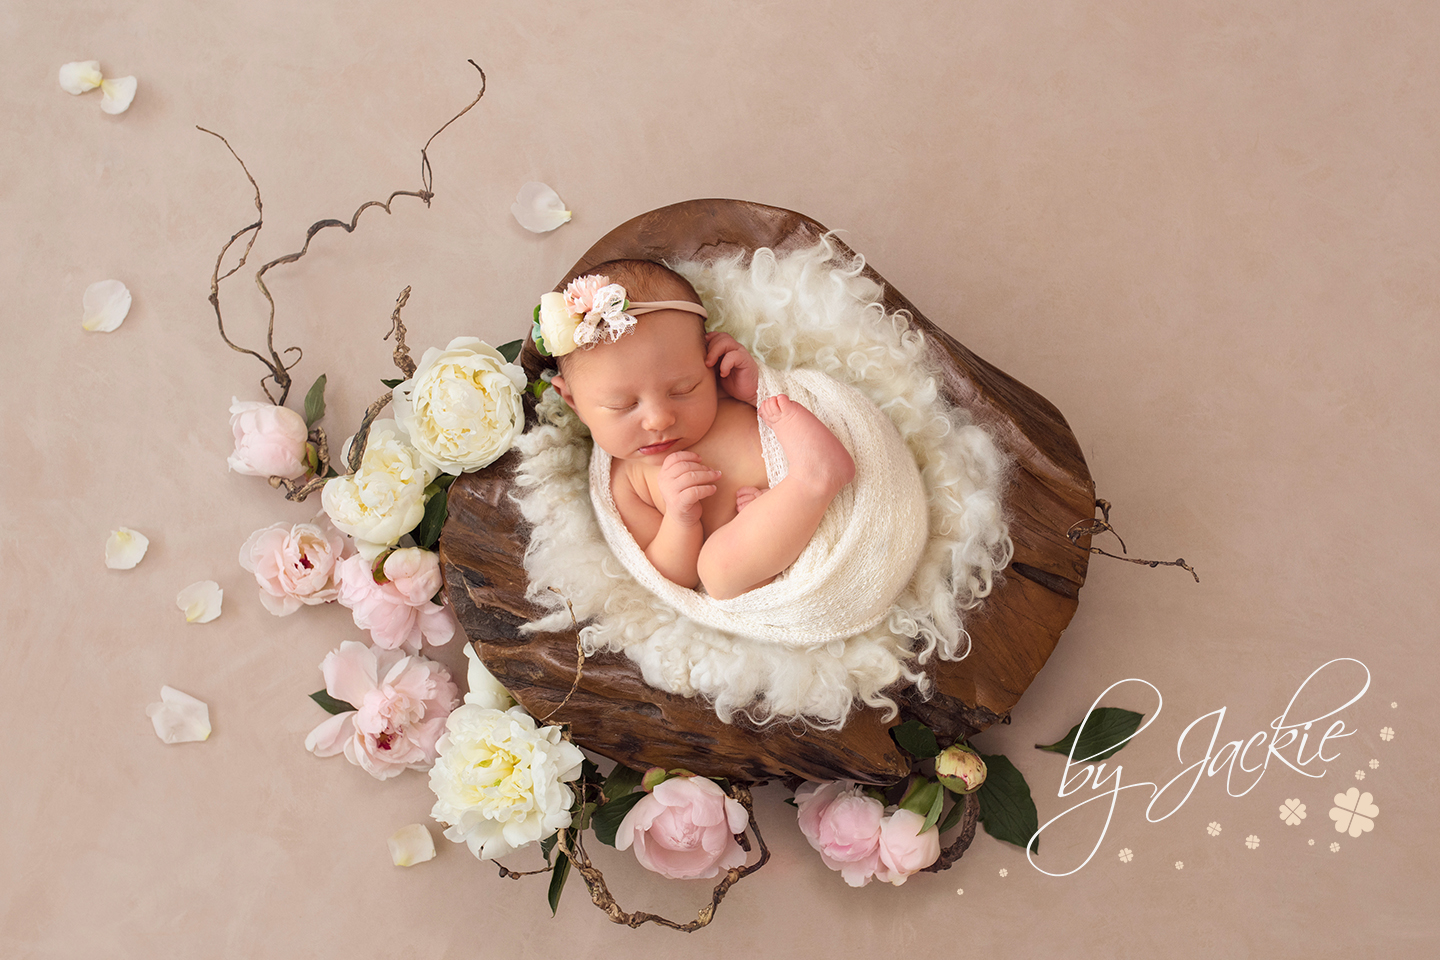 Image of newborn baby girl snuggled in root bowl by Babies By Jackie Photography in Market Weighton near York, Malton, Pocklington and Beverley, Yorkshire, UK